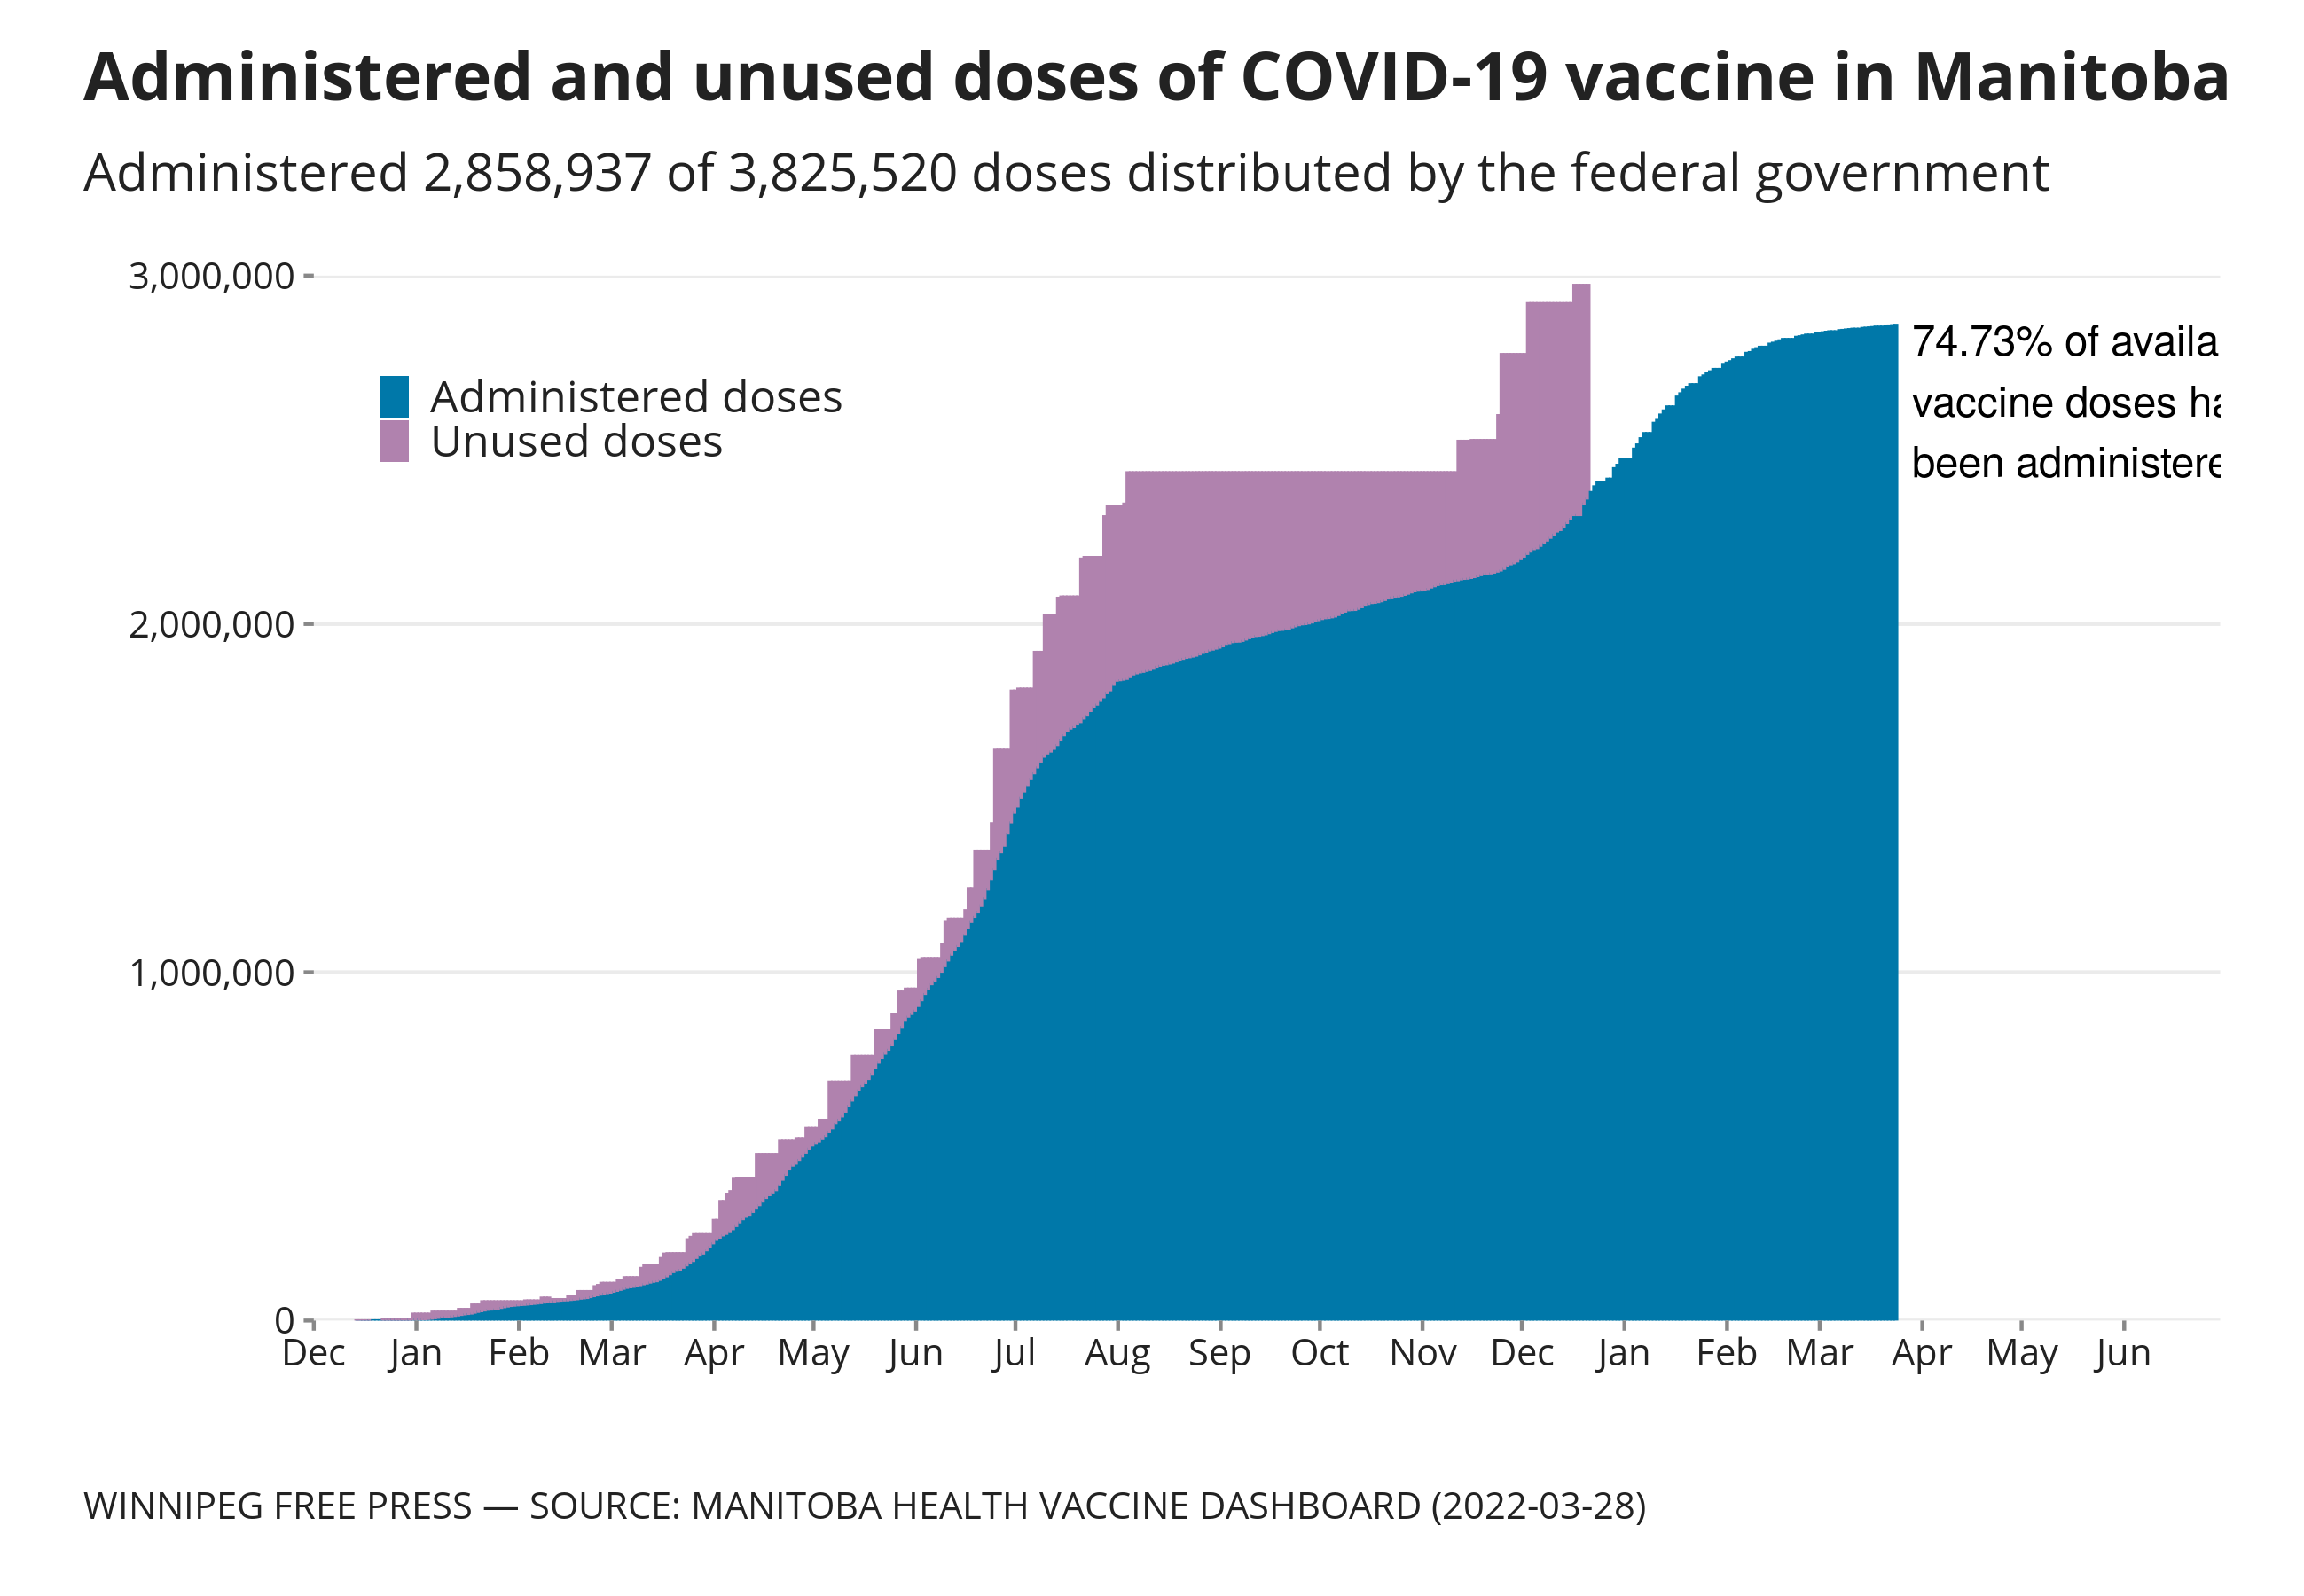 Graphic showing administered and unused doses of COVID-19 vaccines in Manitoba